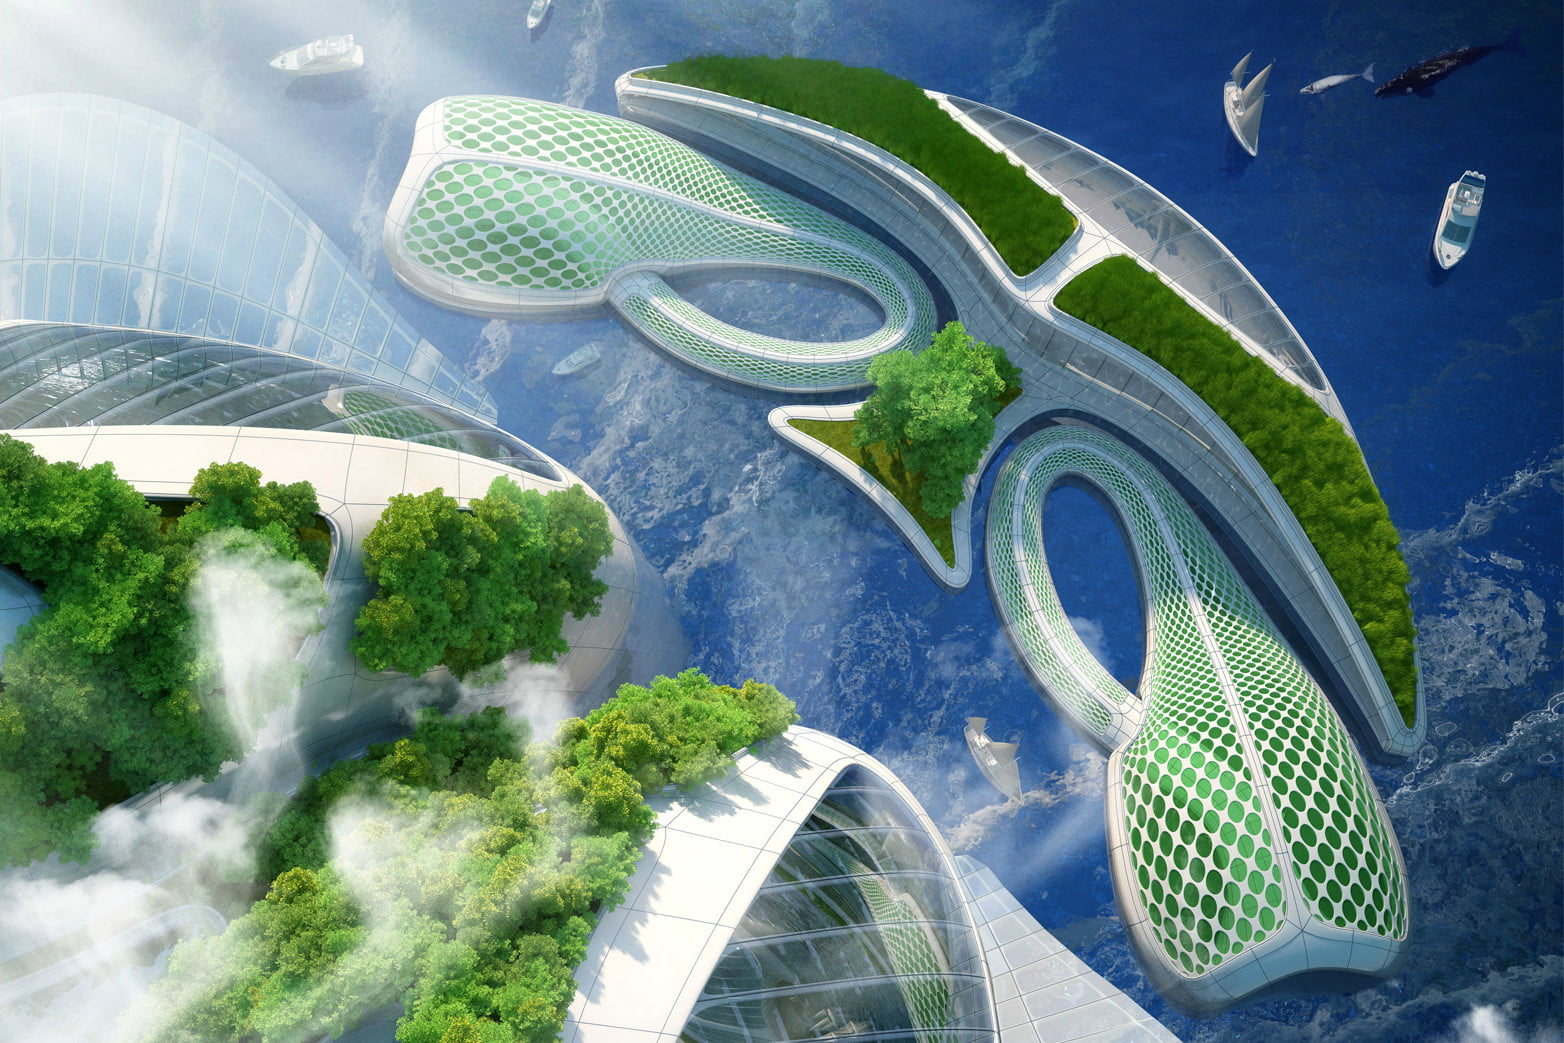 vincent callebaut imagines 3d oceanscrapers made of trash oceanscraper 4